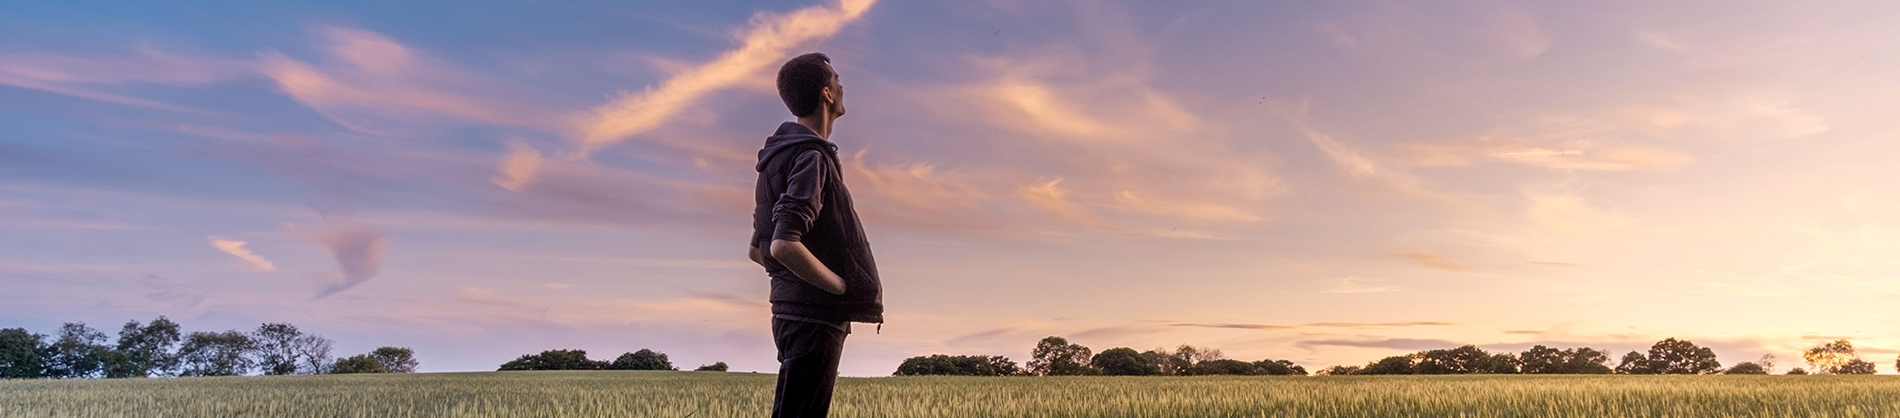 A man stood in a field looking up to a sunset sky